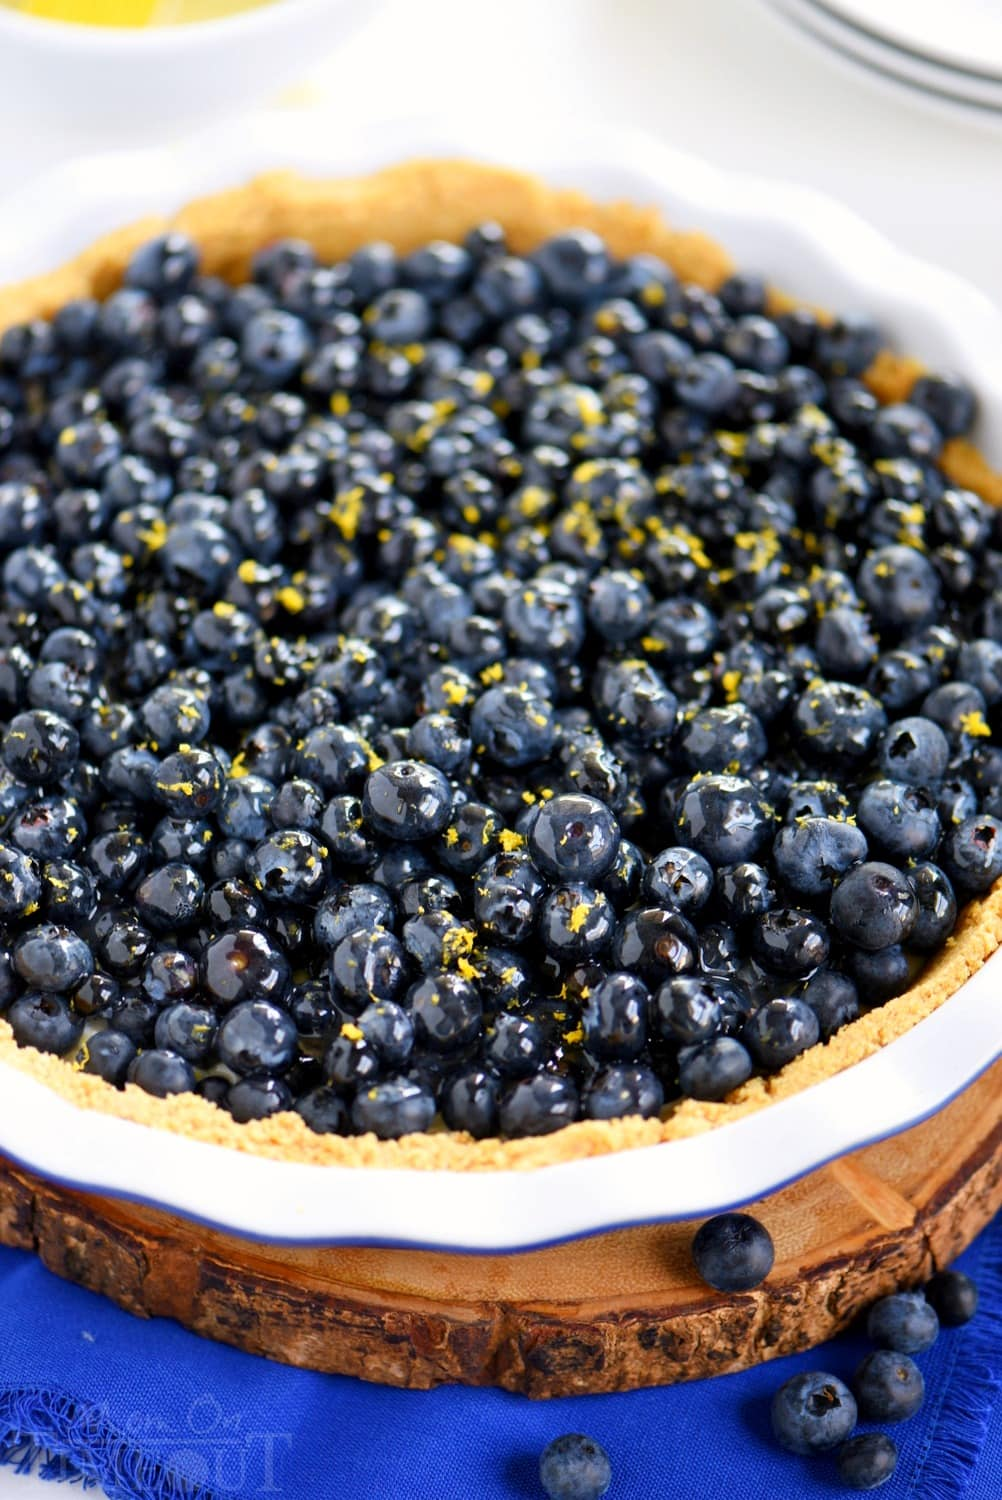 no-bake-cream-pie-topped-with-lemon-zest-blueberries